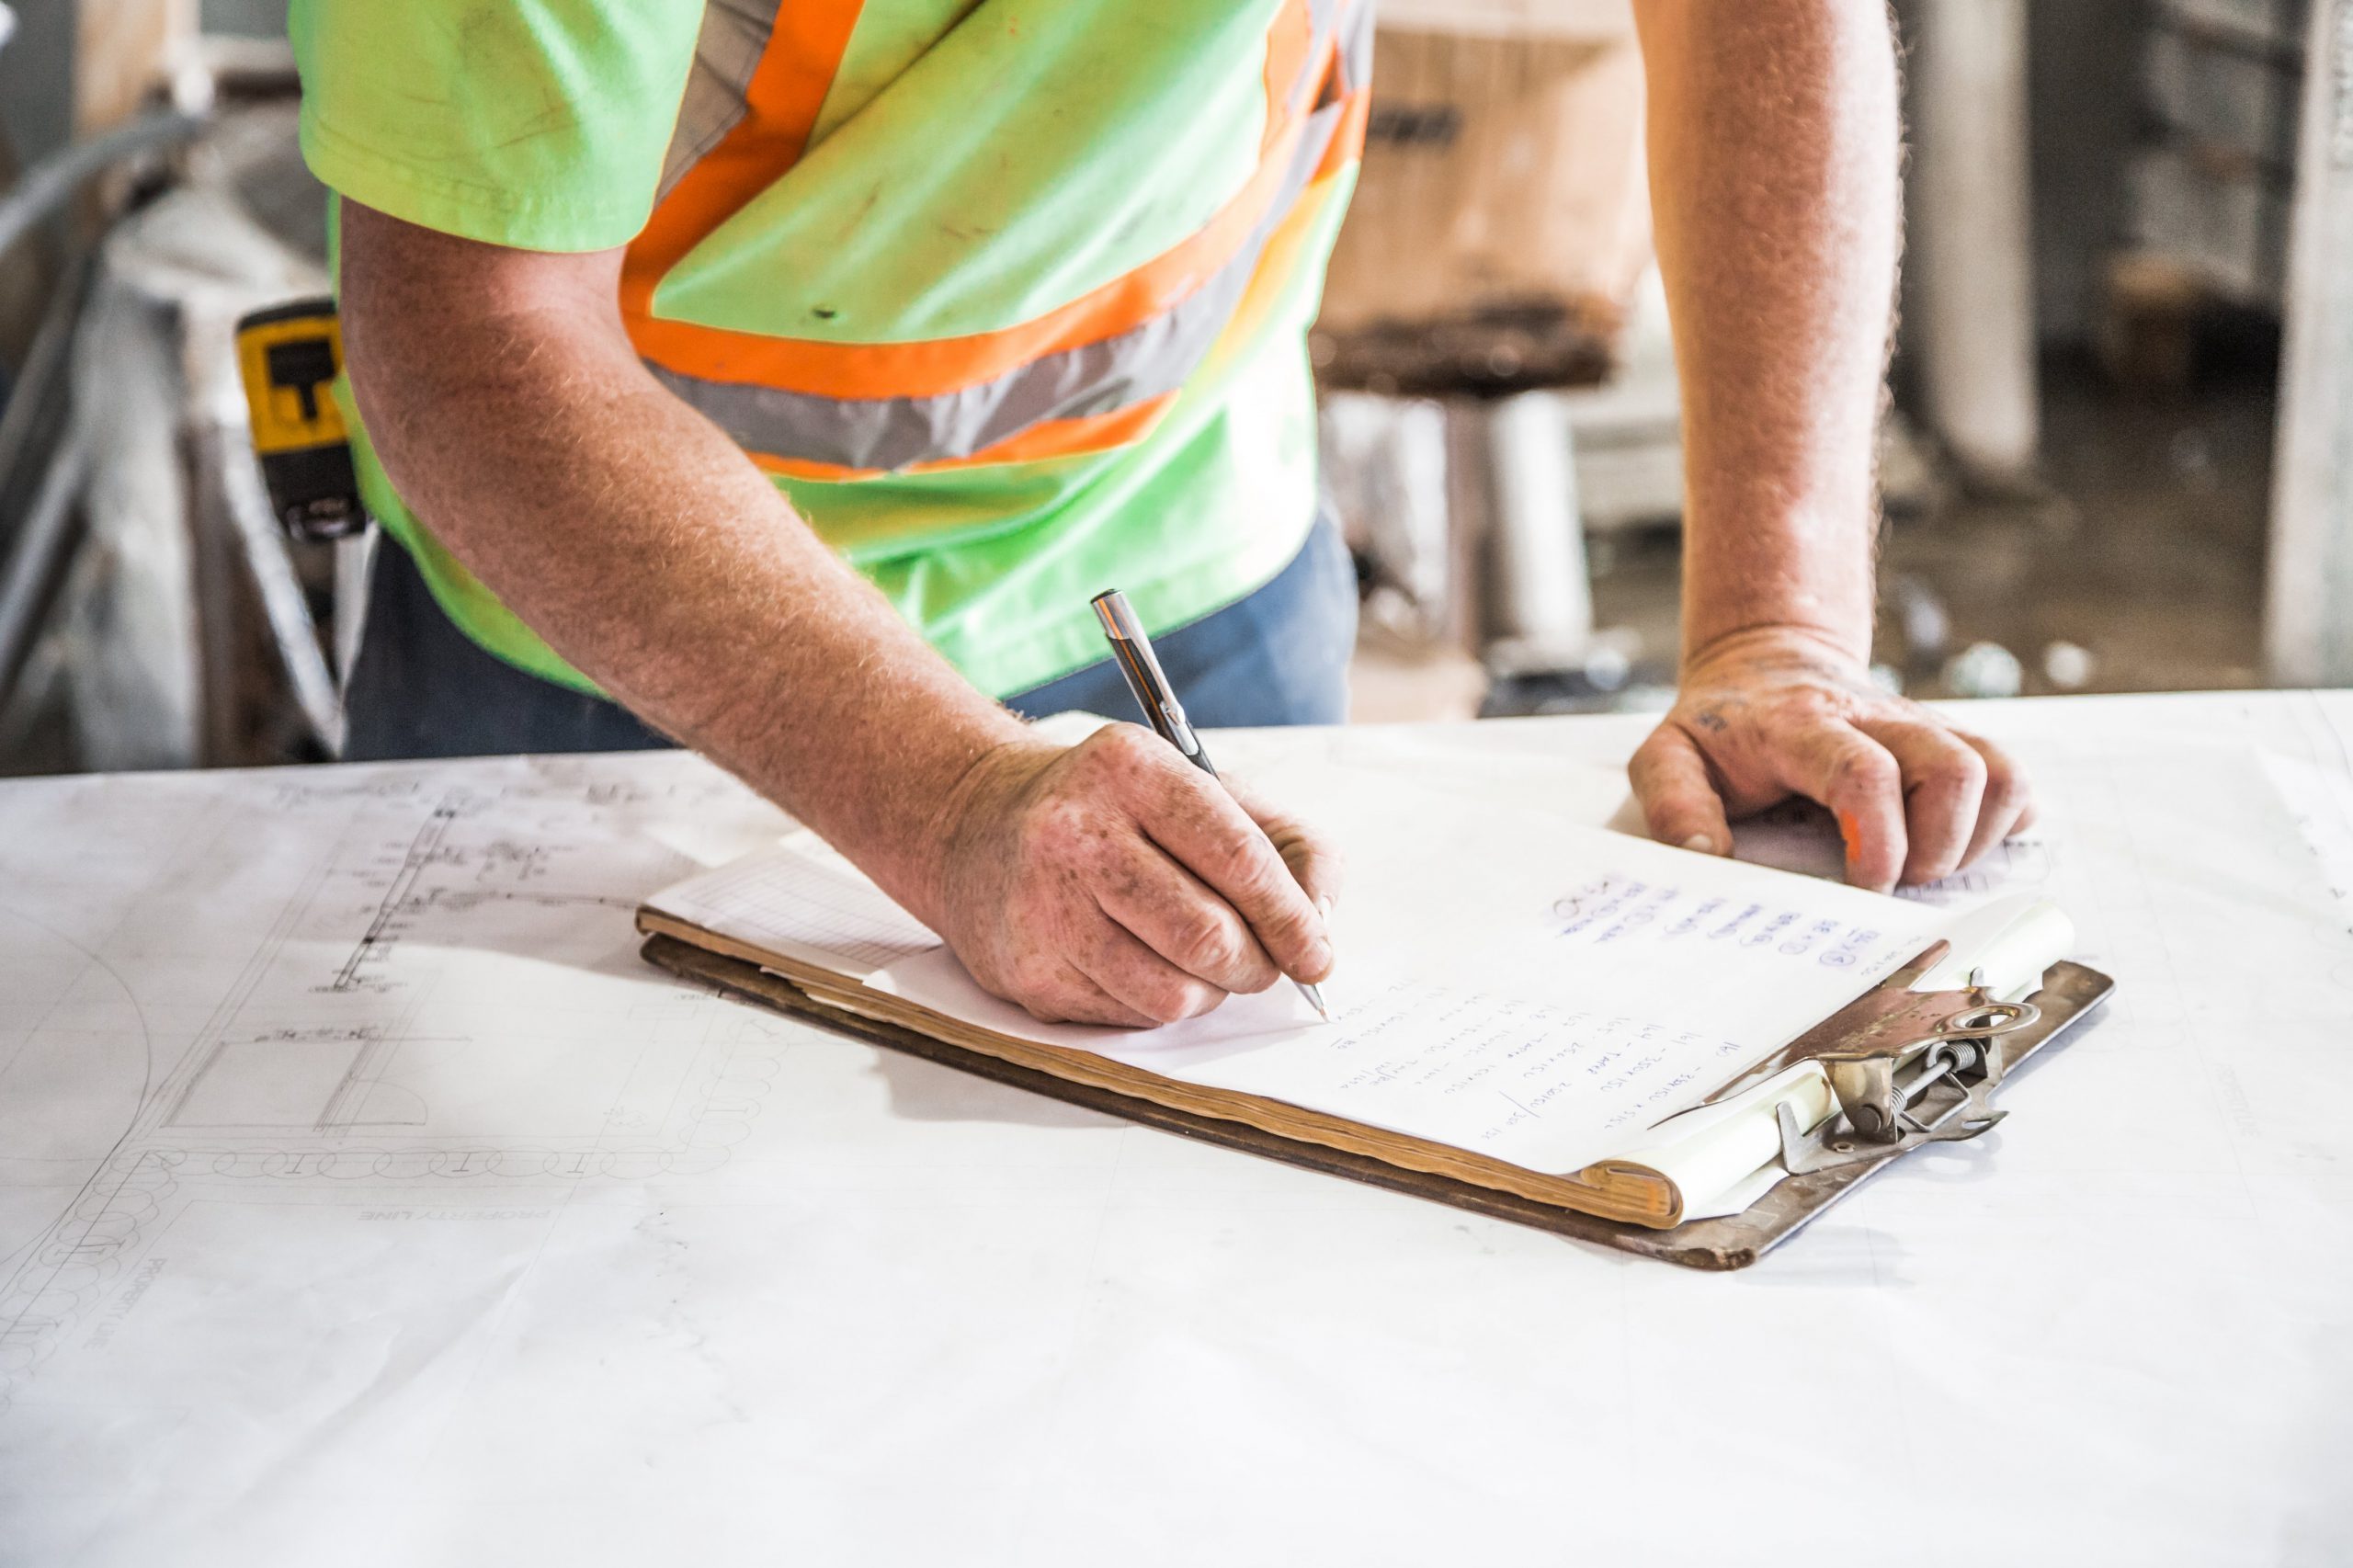 All About Workers' Compensation